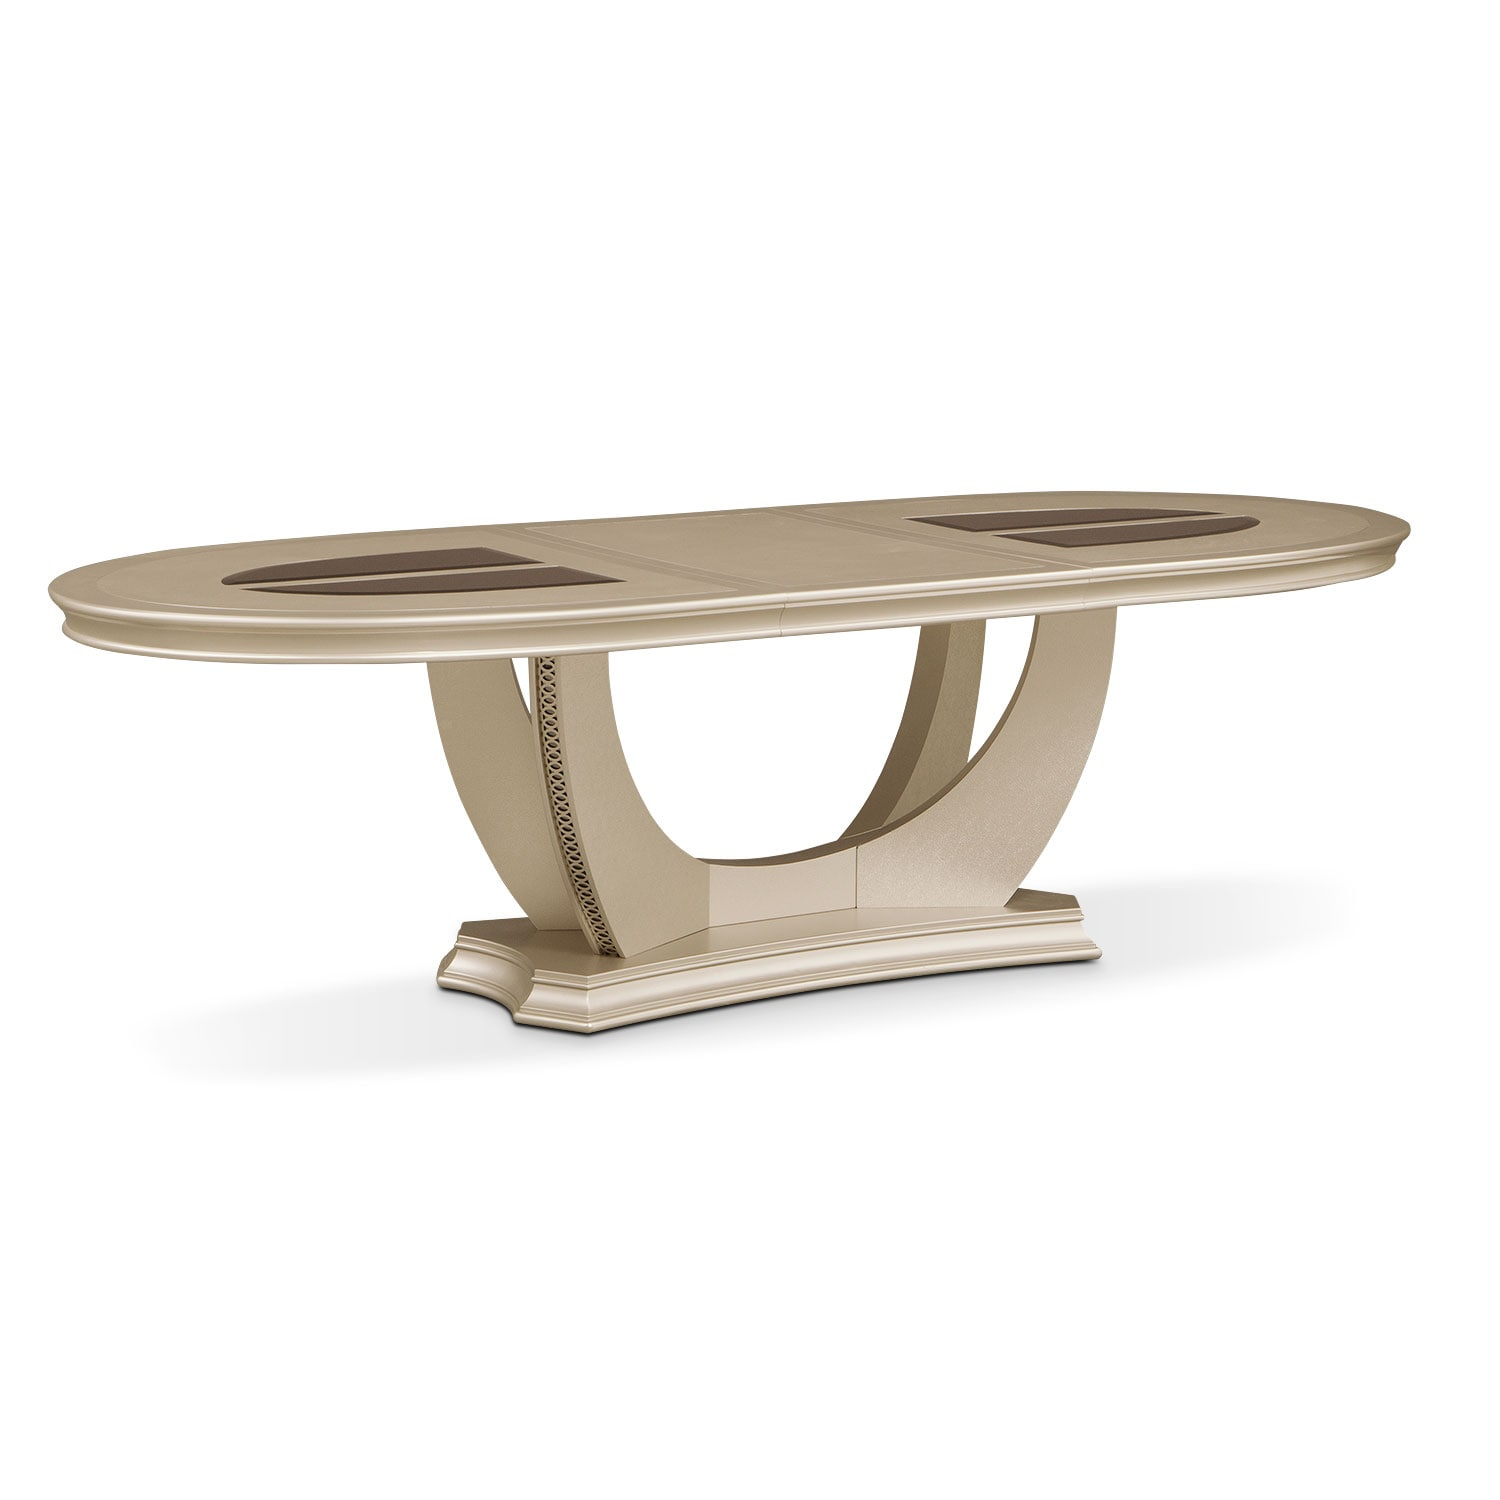 Allegro Oval Dining Table - Platinum